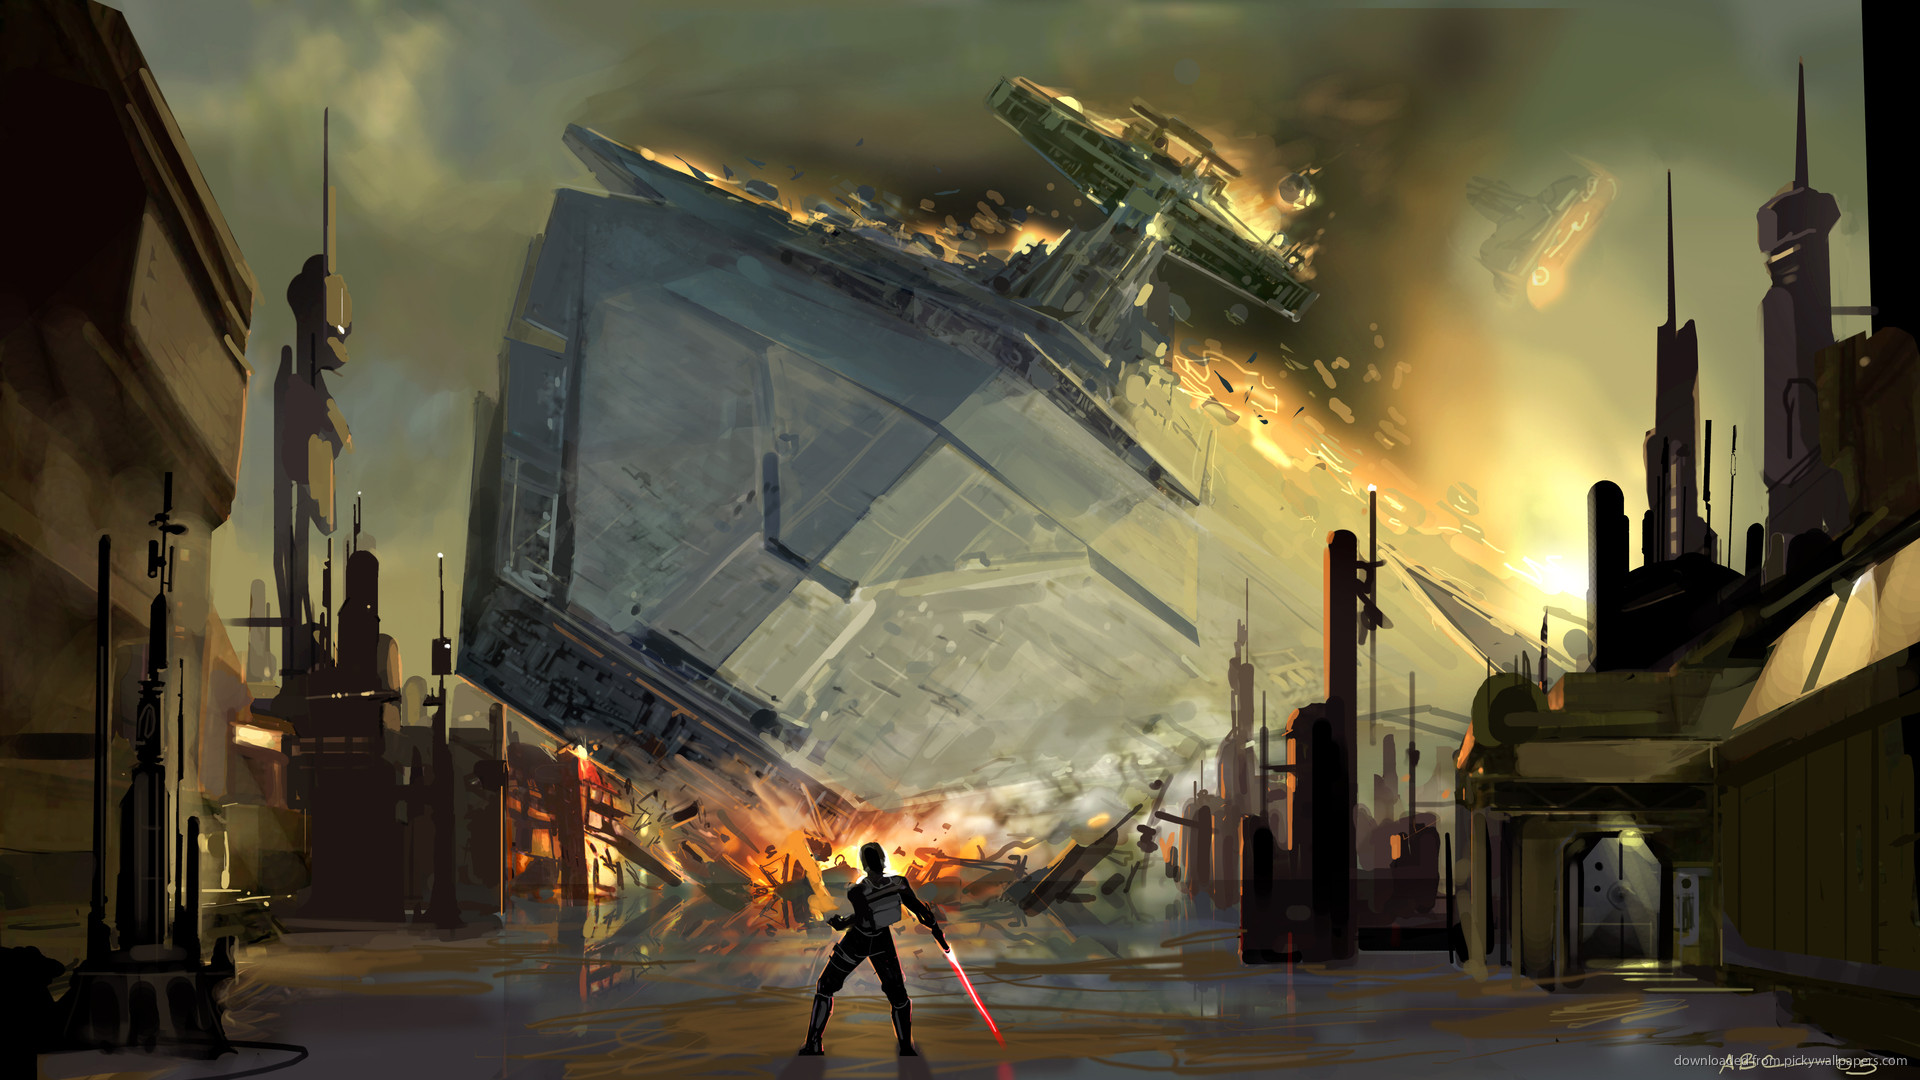 1920x1080 SWTFU Star Destroyer force pull picture